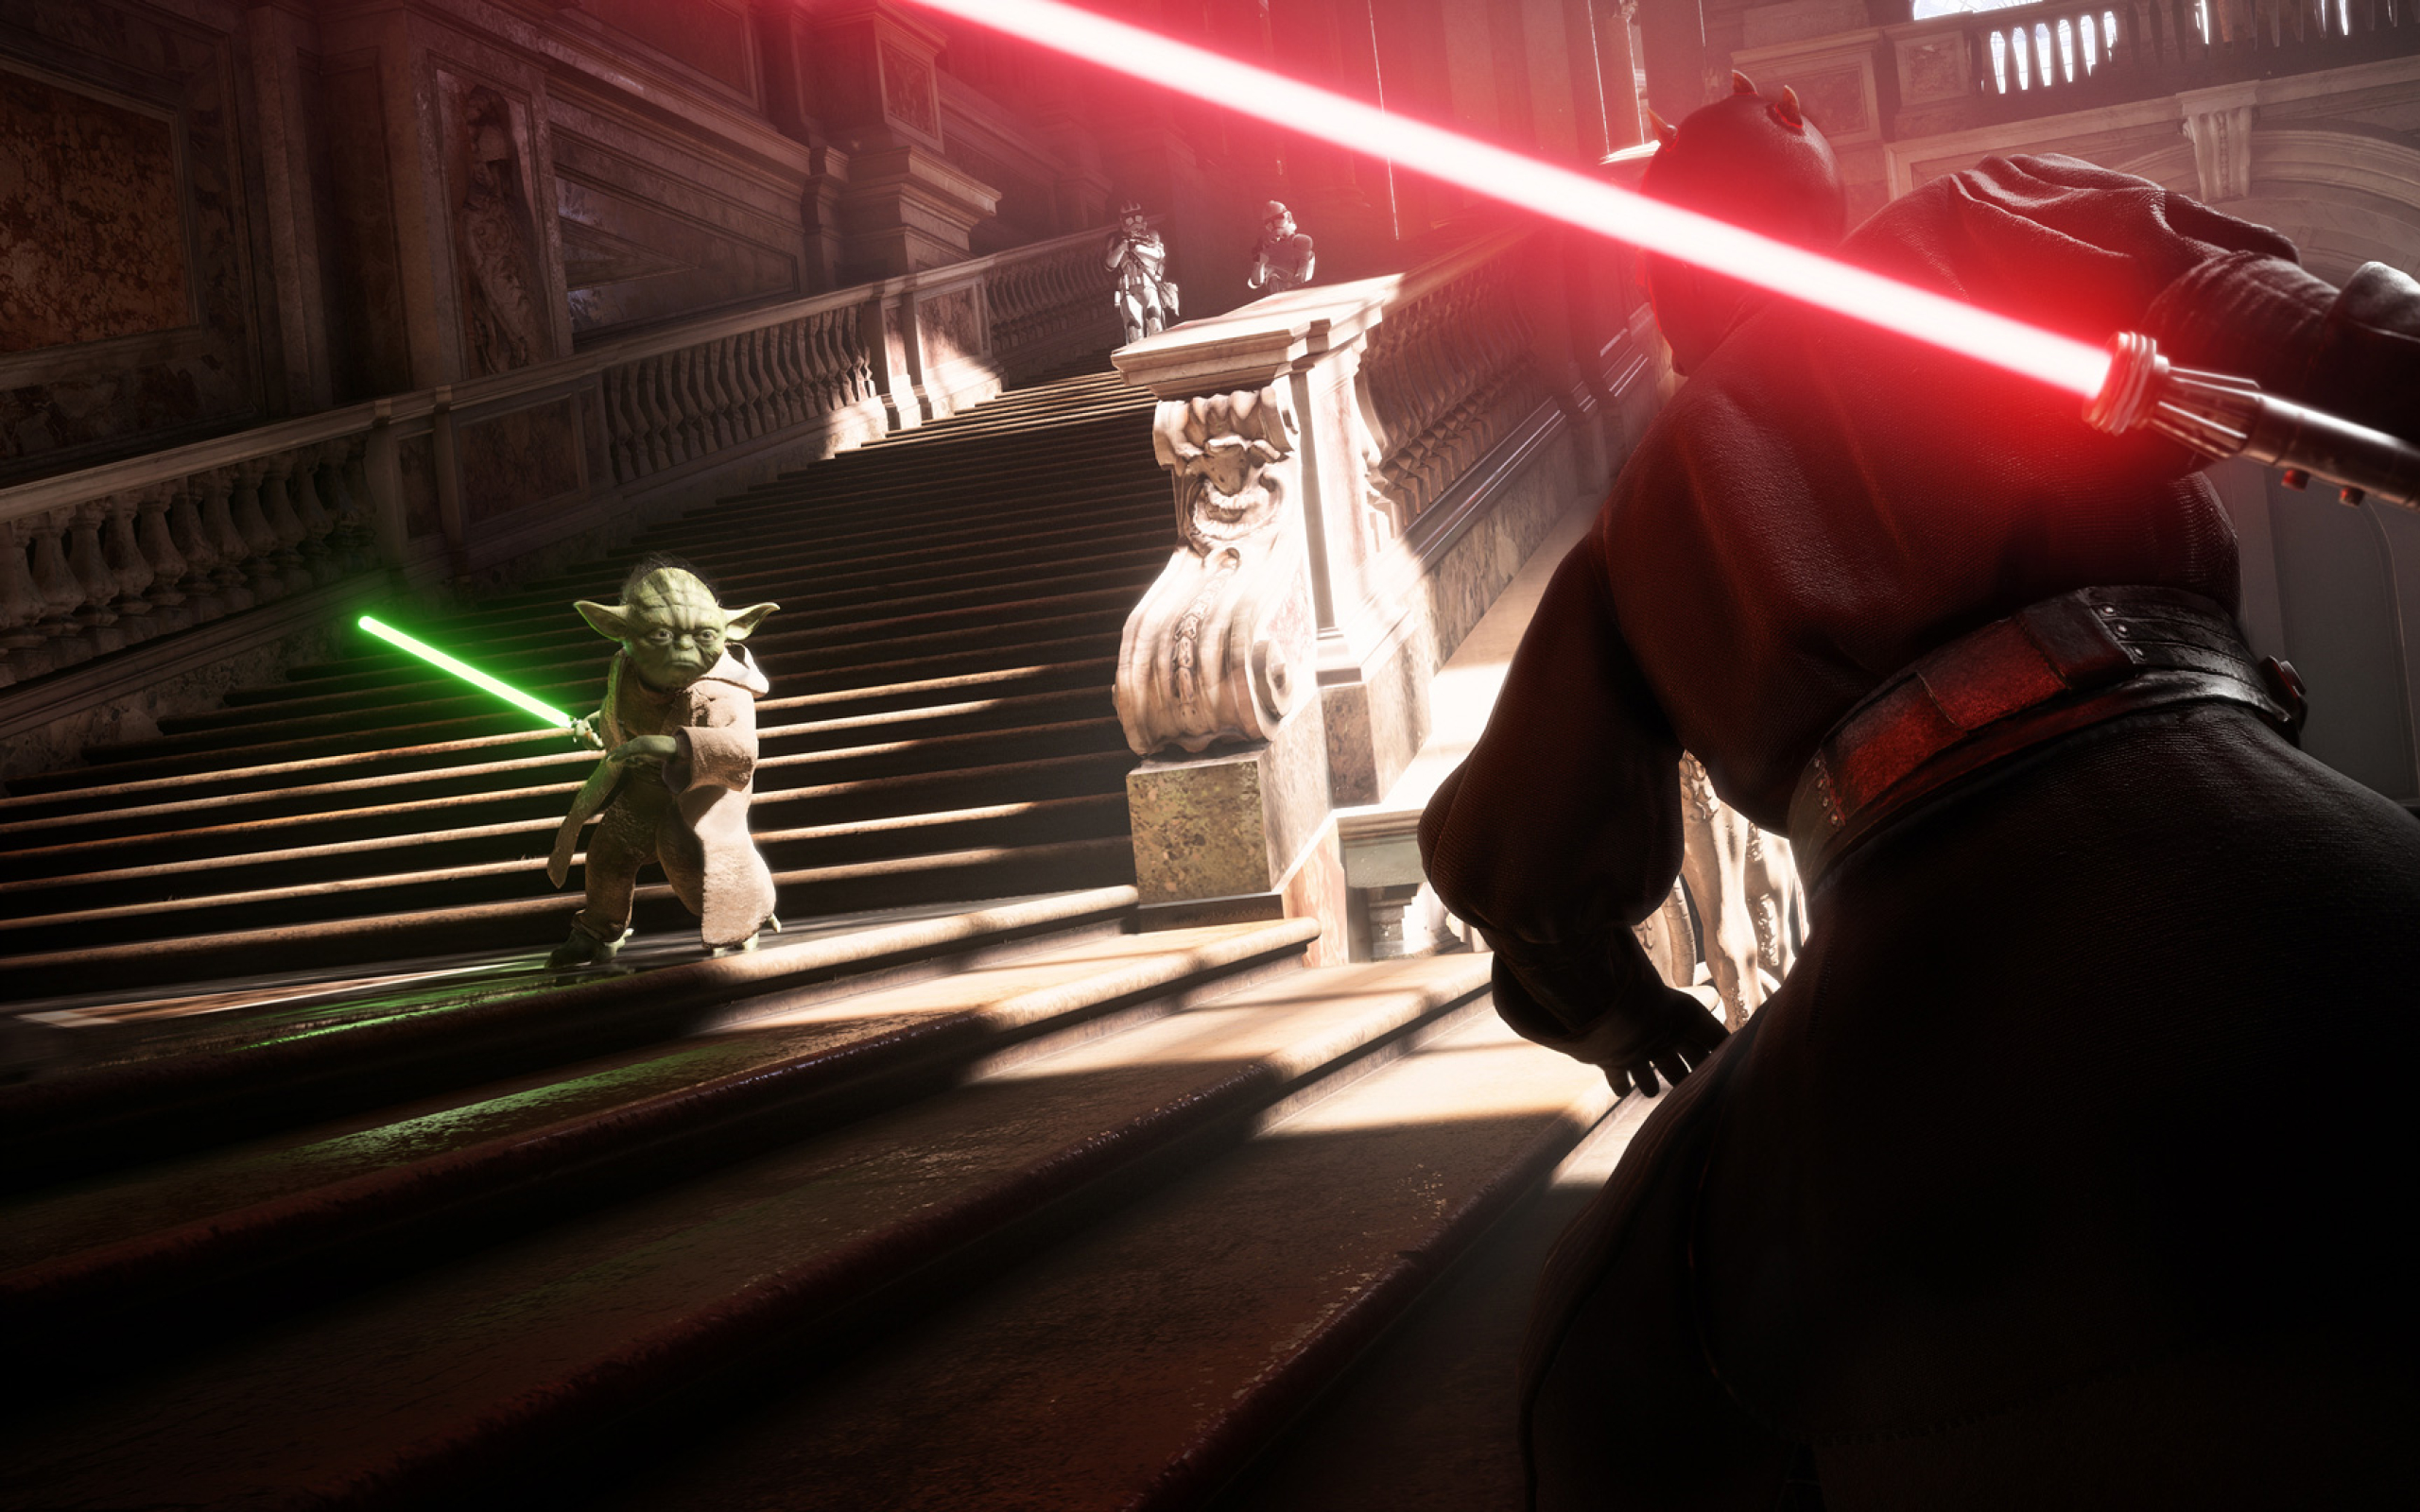 2560x1600 Yoda Vs Darth Vader Star Wars Battlefront 2 2560x1600 Resolution Wallpaper Hd Games 4k Wallpapers Images Photos And Background